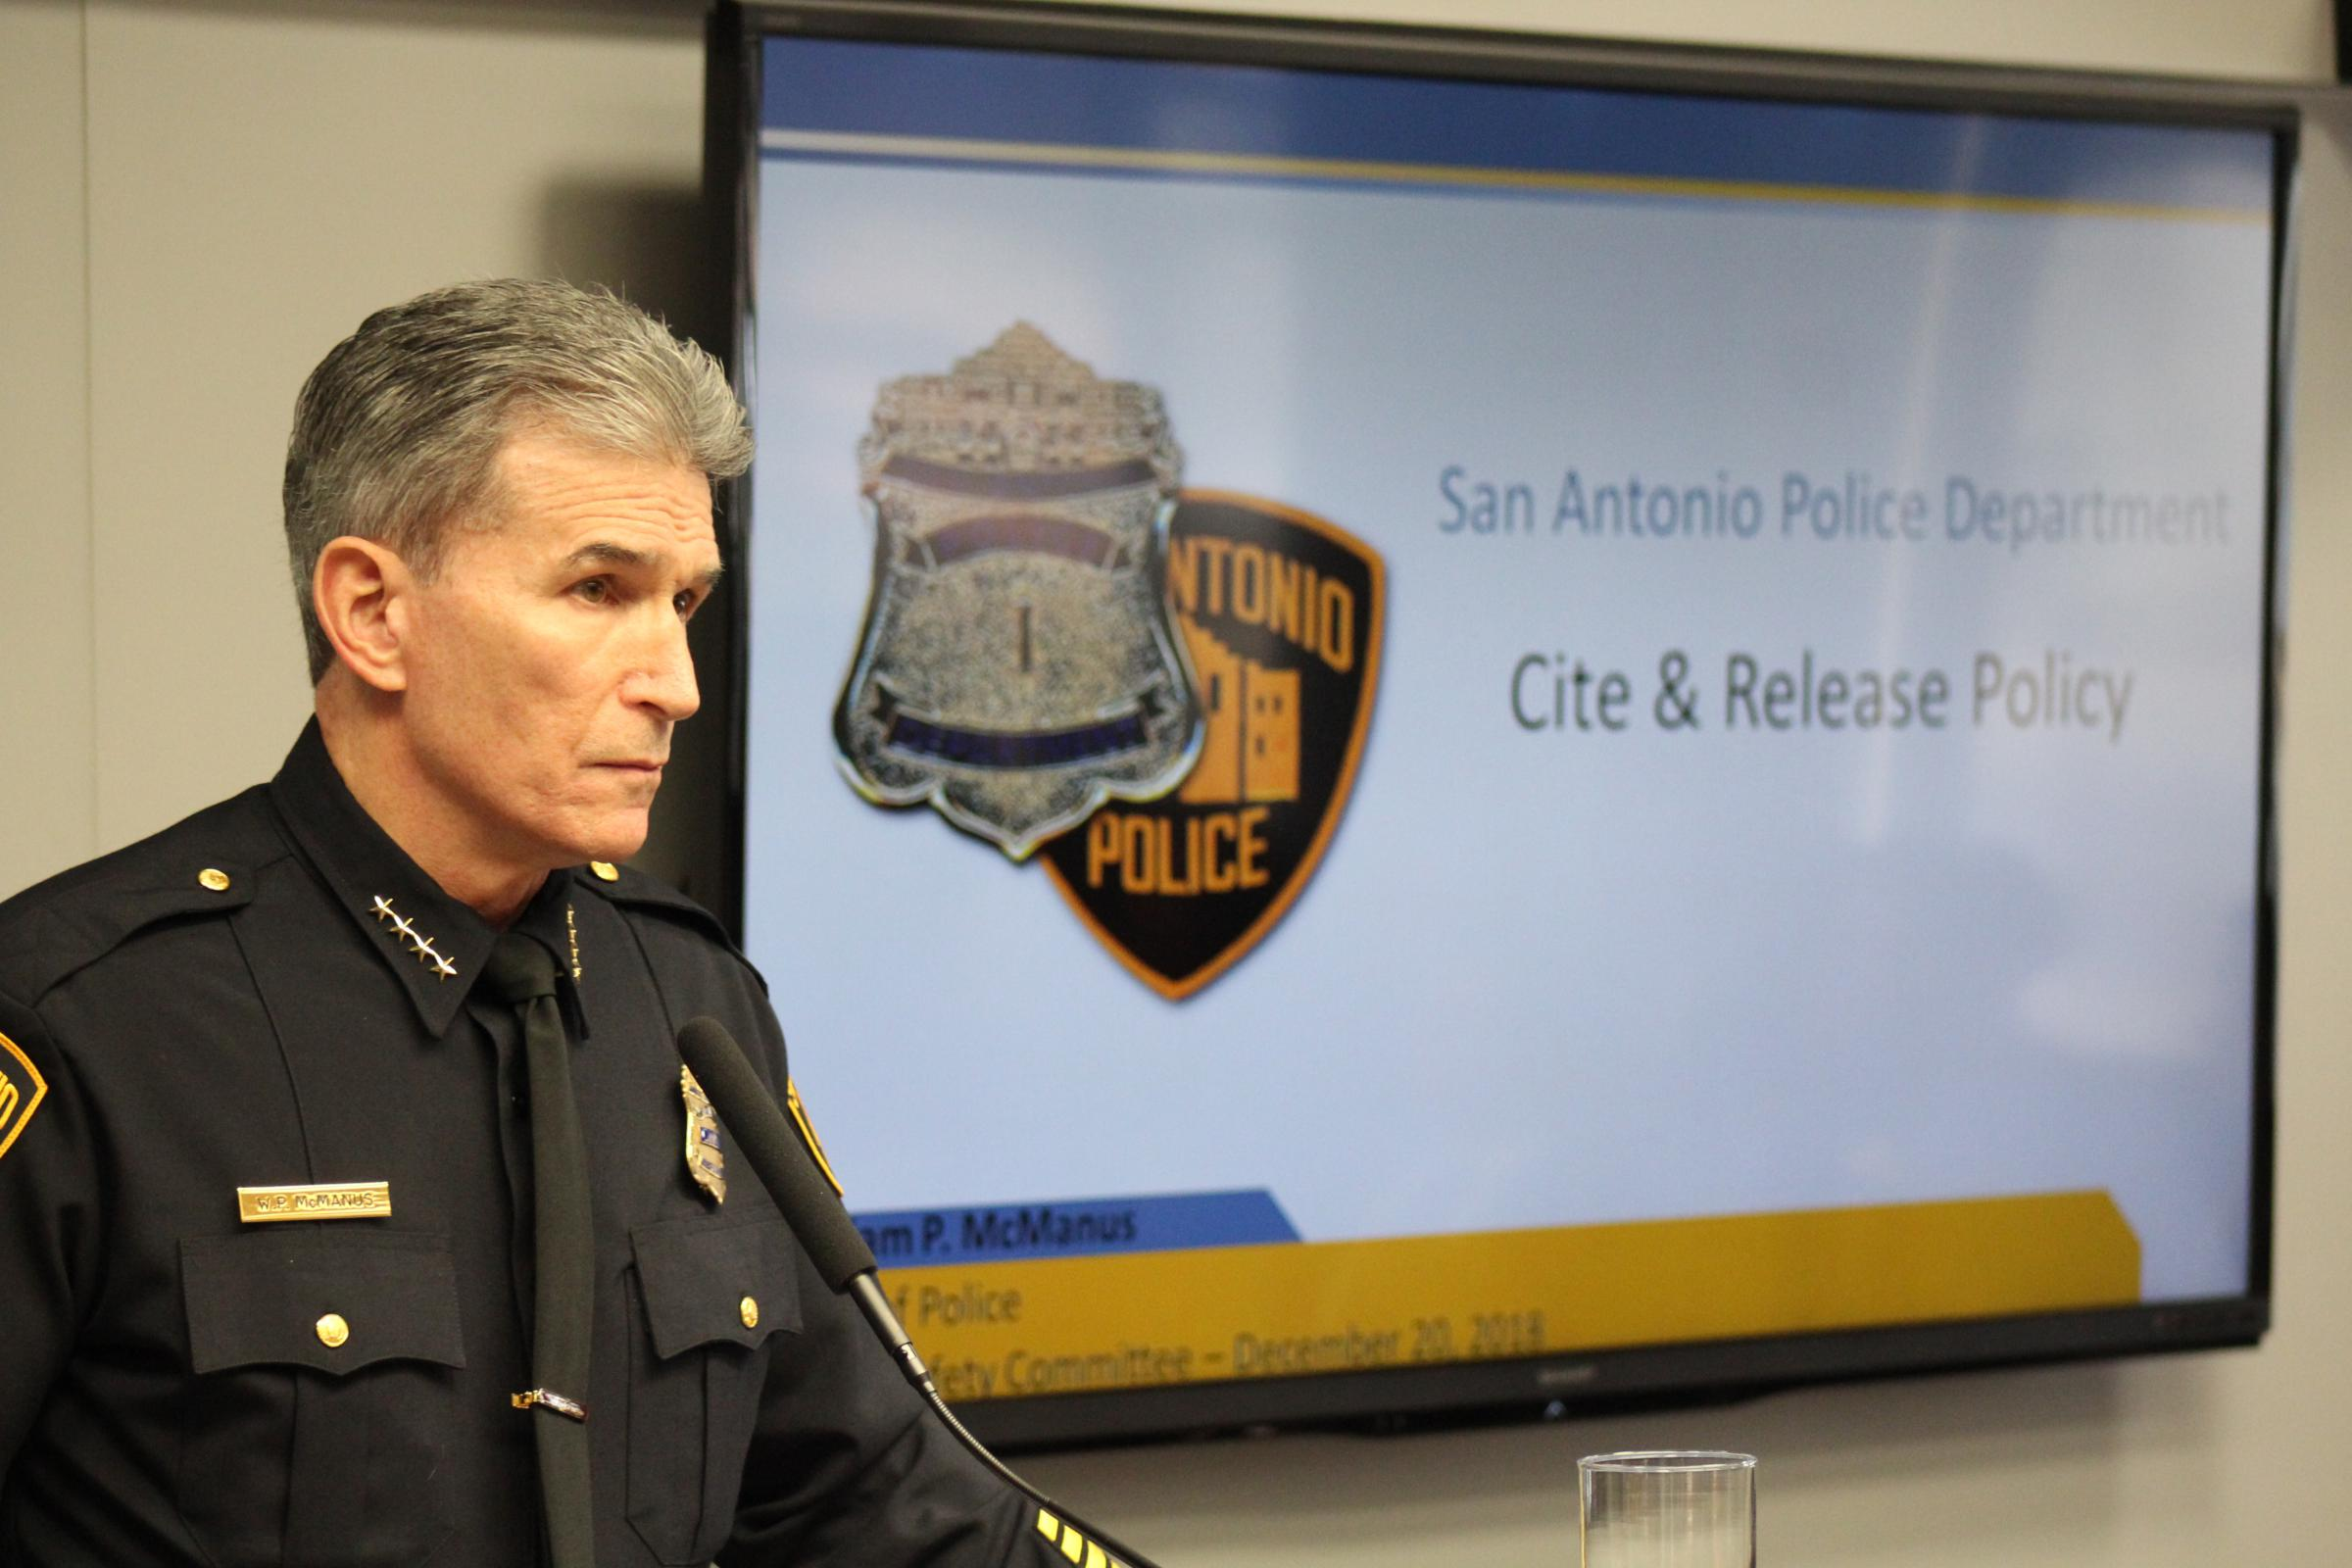 SAPD Ready To Cite-And-Release For Low-Level Offenses